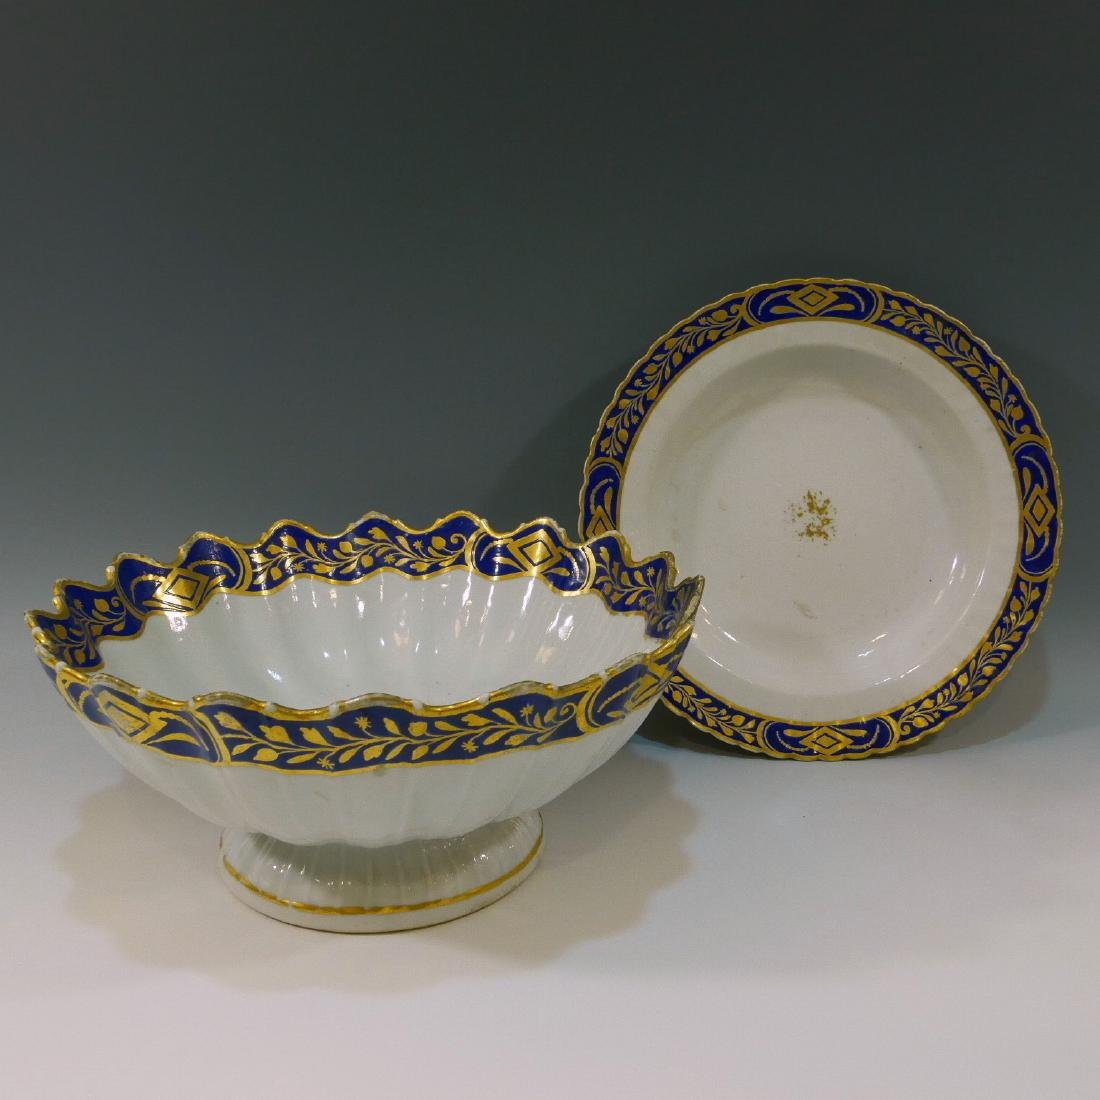 CHINESE ANTIQUE BLUE & GILT BOWL AND PLATE - 18TH